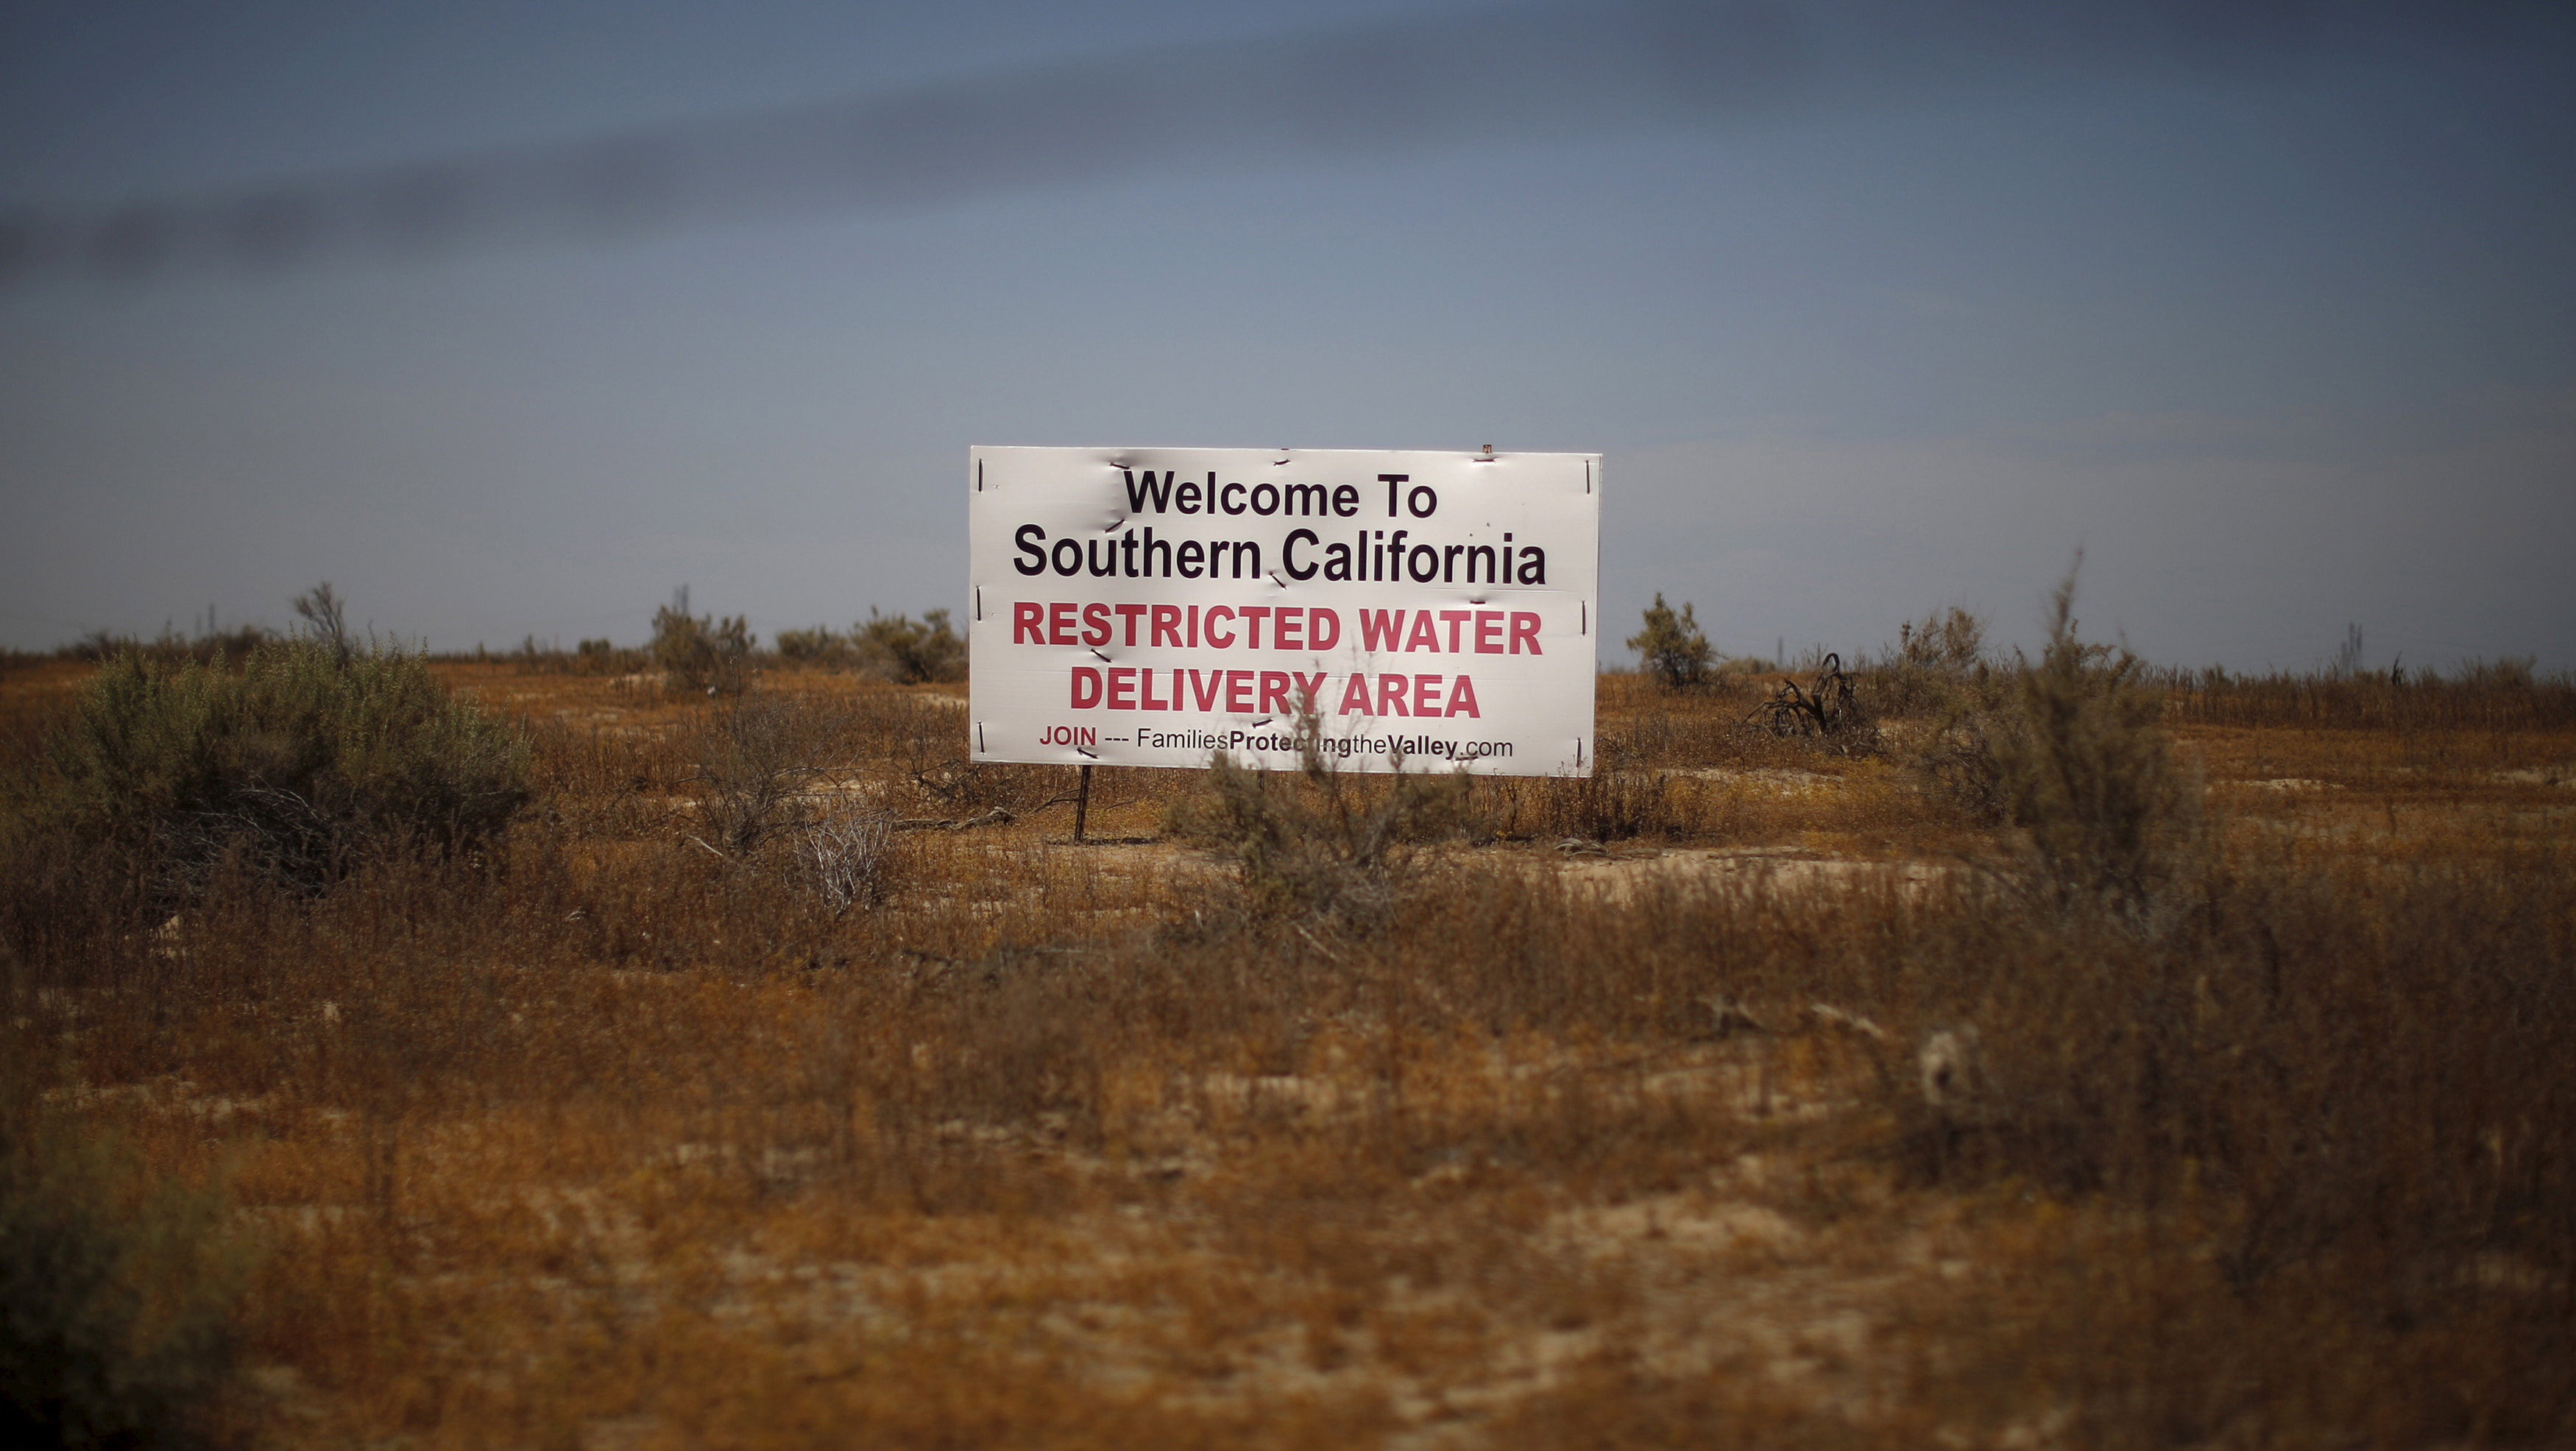 A drought sign is seen in a field near Buttonwillow, California April 20, 2015. With the country's most populous state entering the fourth year of a devastating drought, Governor Jerry Brown has ordered an overall 25 percent cut in urban water use though the first statewide mandatory reductions in California's history. The suppliers with the highest per capita water use would have to accept a 36 percent cut. Meanwhile, environmentalists and some urban dwellers say the state's $45 billion agriculture industry should bear a greater share of water savings, given its massive water use.